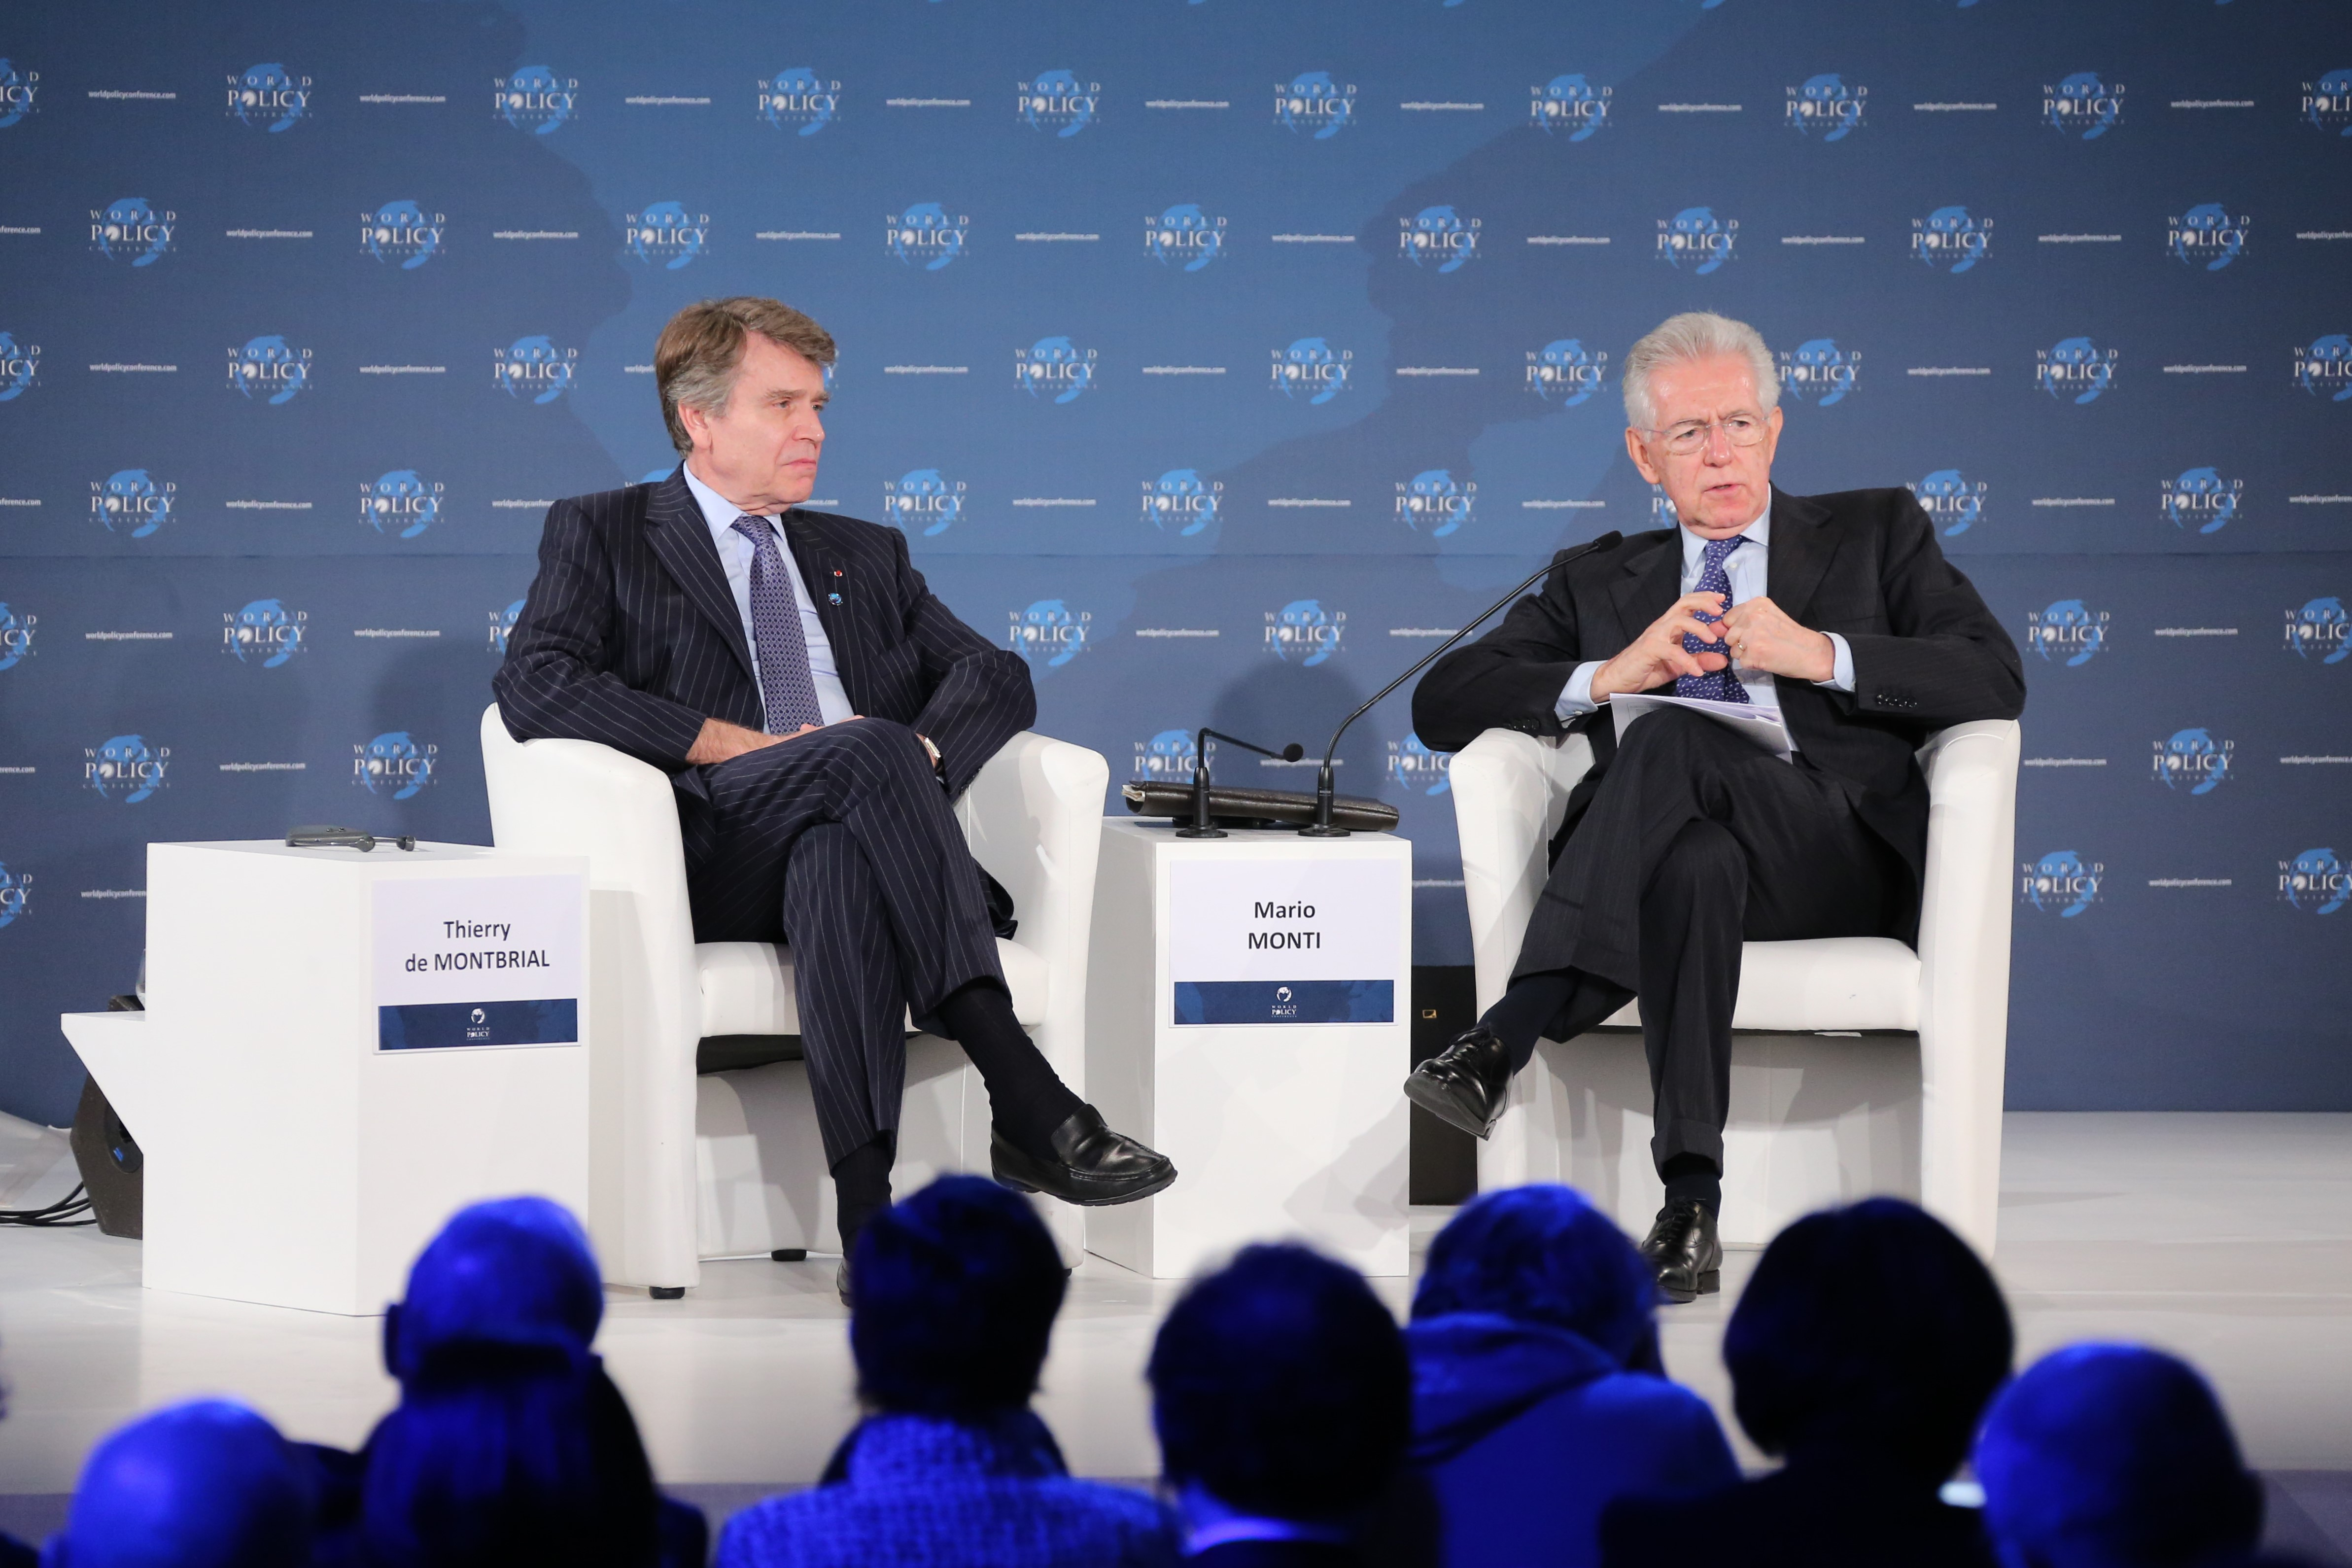 World Policy Conference WPC 2012, Thierry de Montbrial, Mario Monti